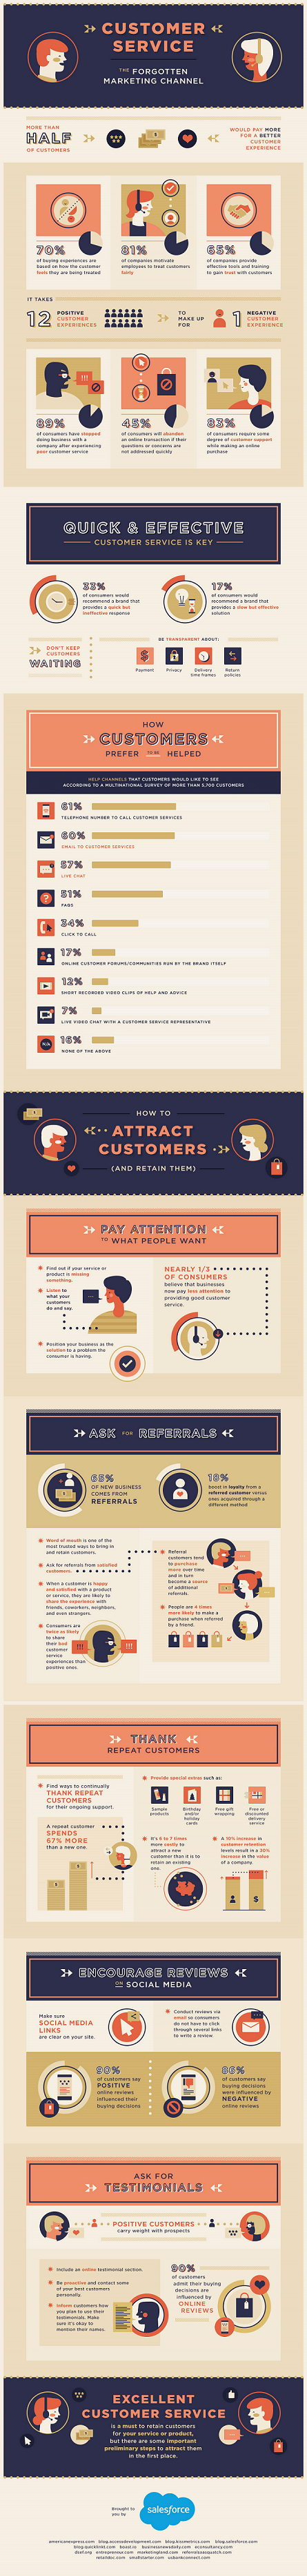 Brand Strategy: Customer Service as a Marketing Strategy [Infographic]